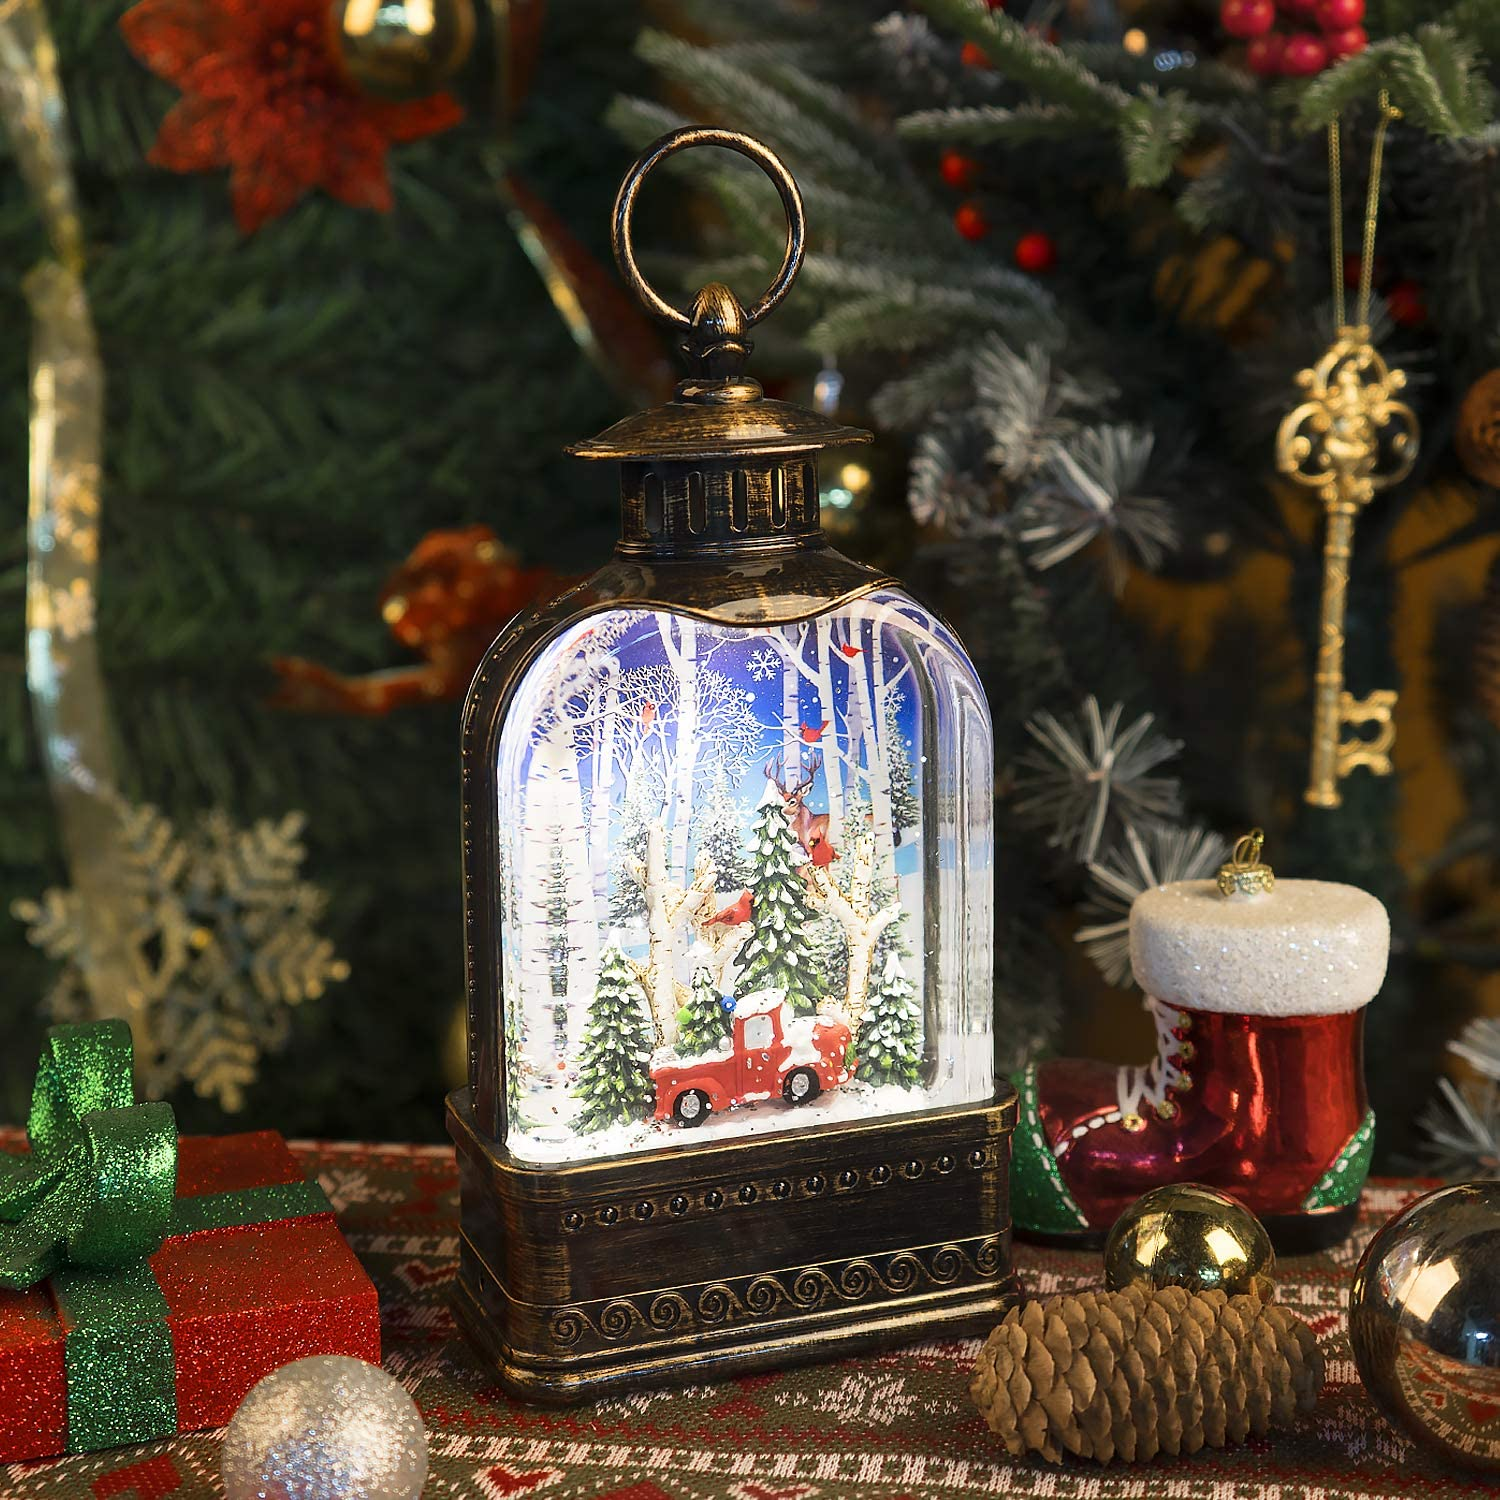 Christmas Snow Globe Lantern,USB & Battery Operated Lighted Swirling Glitter Water Lantern with Timer for Christmas Home Decoration, Snowman